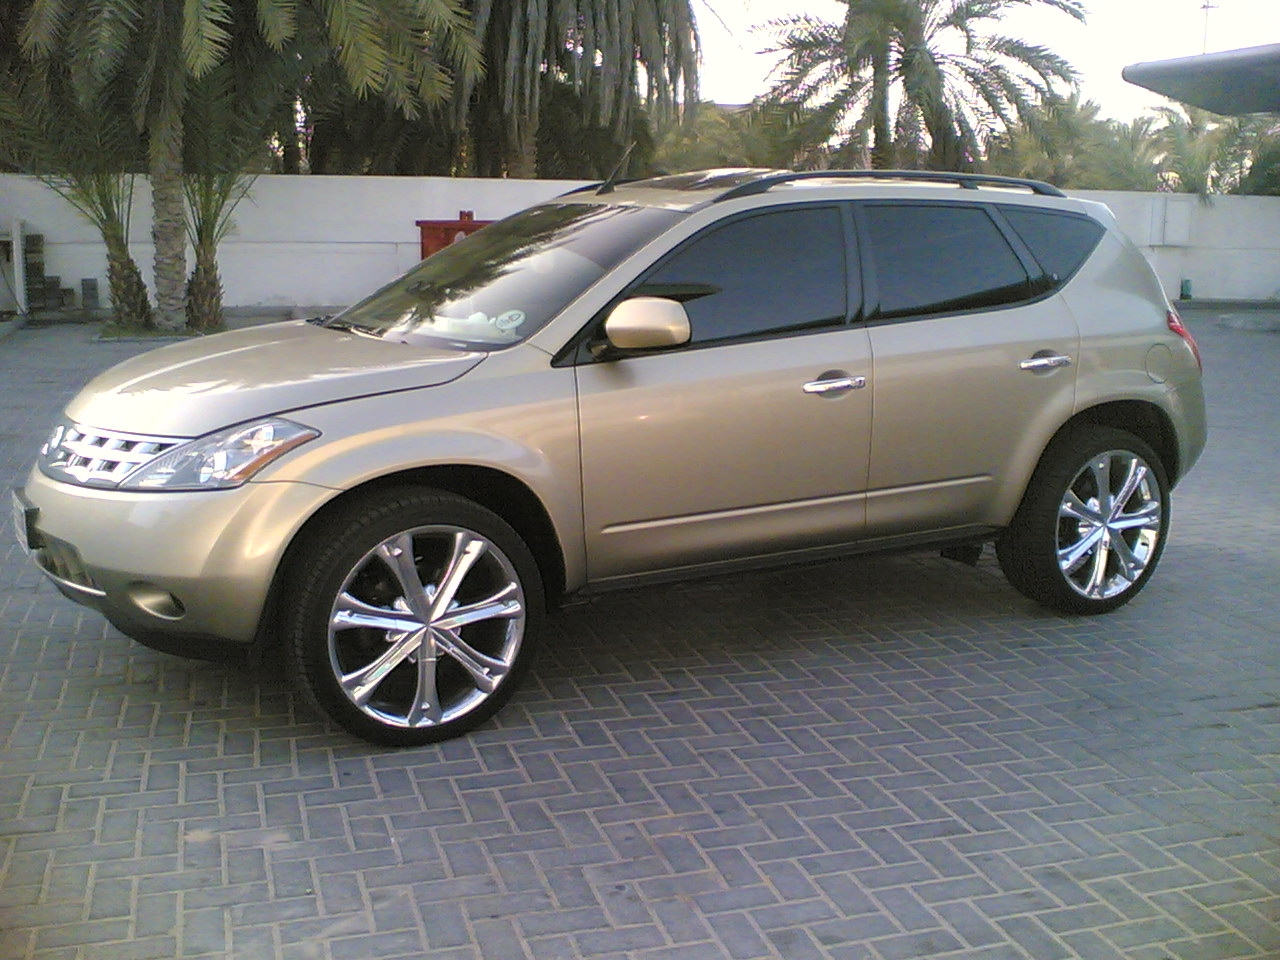 Mazrooei 2006 Nissan Murano Specs, Photos, Modification Info at ...